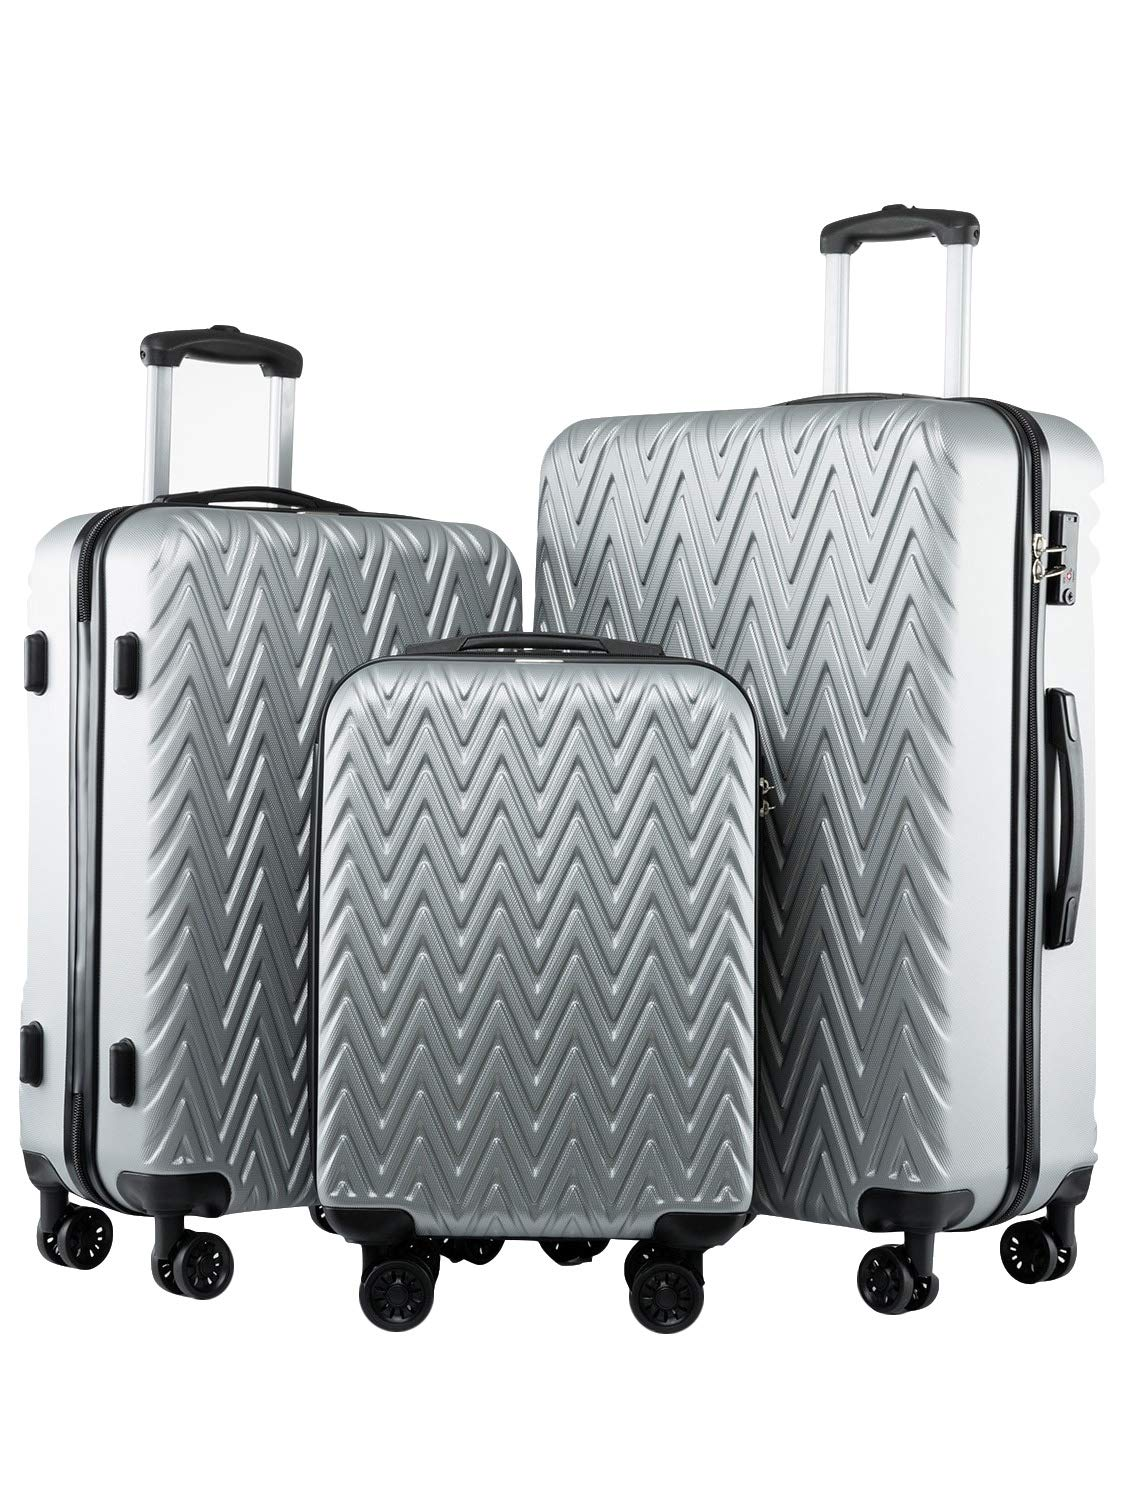 Seanshow Luggage 3 Piece Set Silver Lightweight TSA Lock 3PCS Luggage Set For Travel 18-24-28in